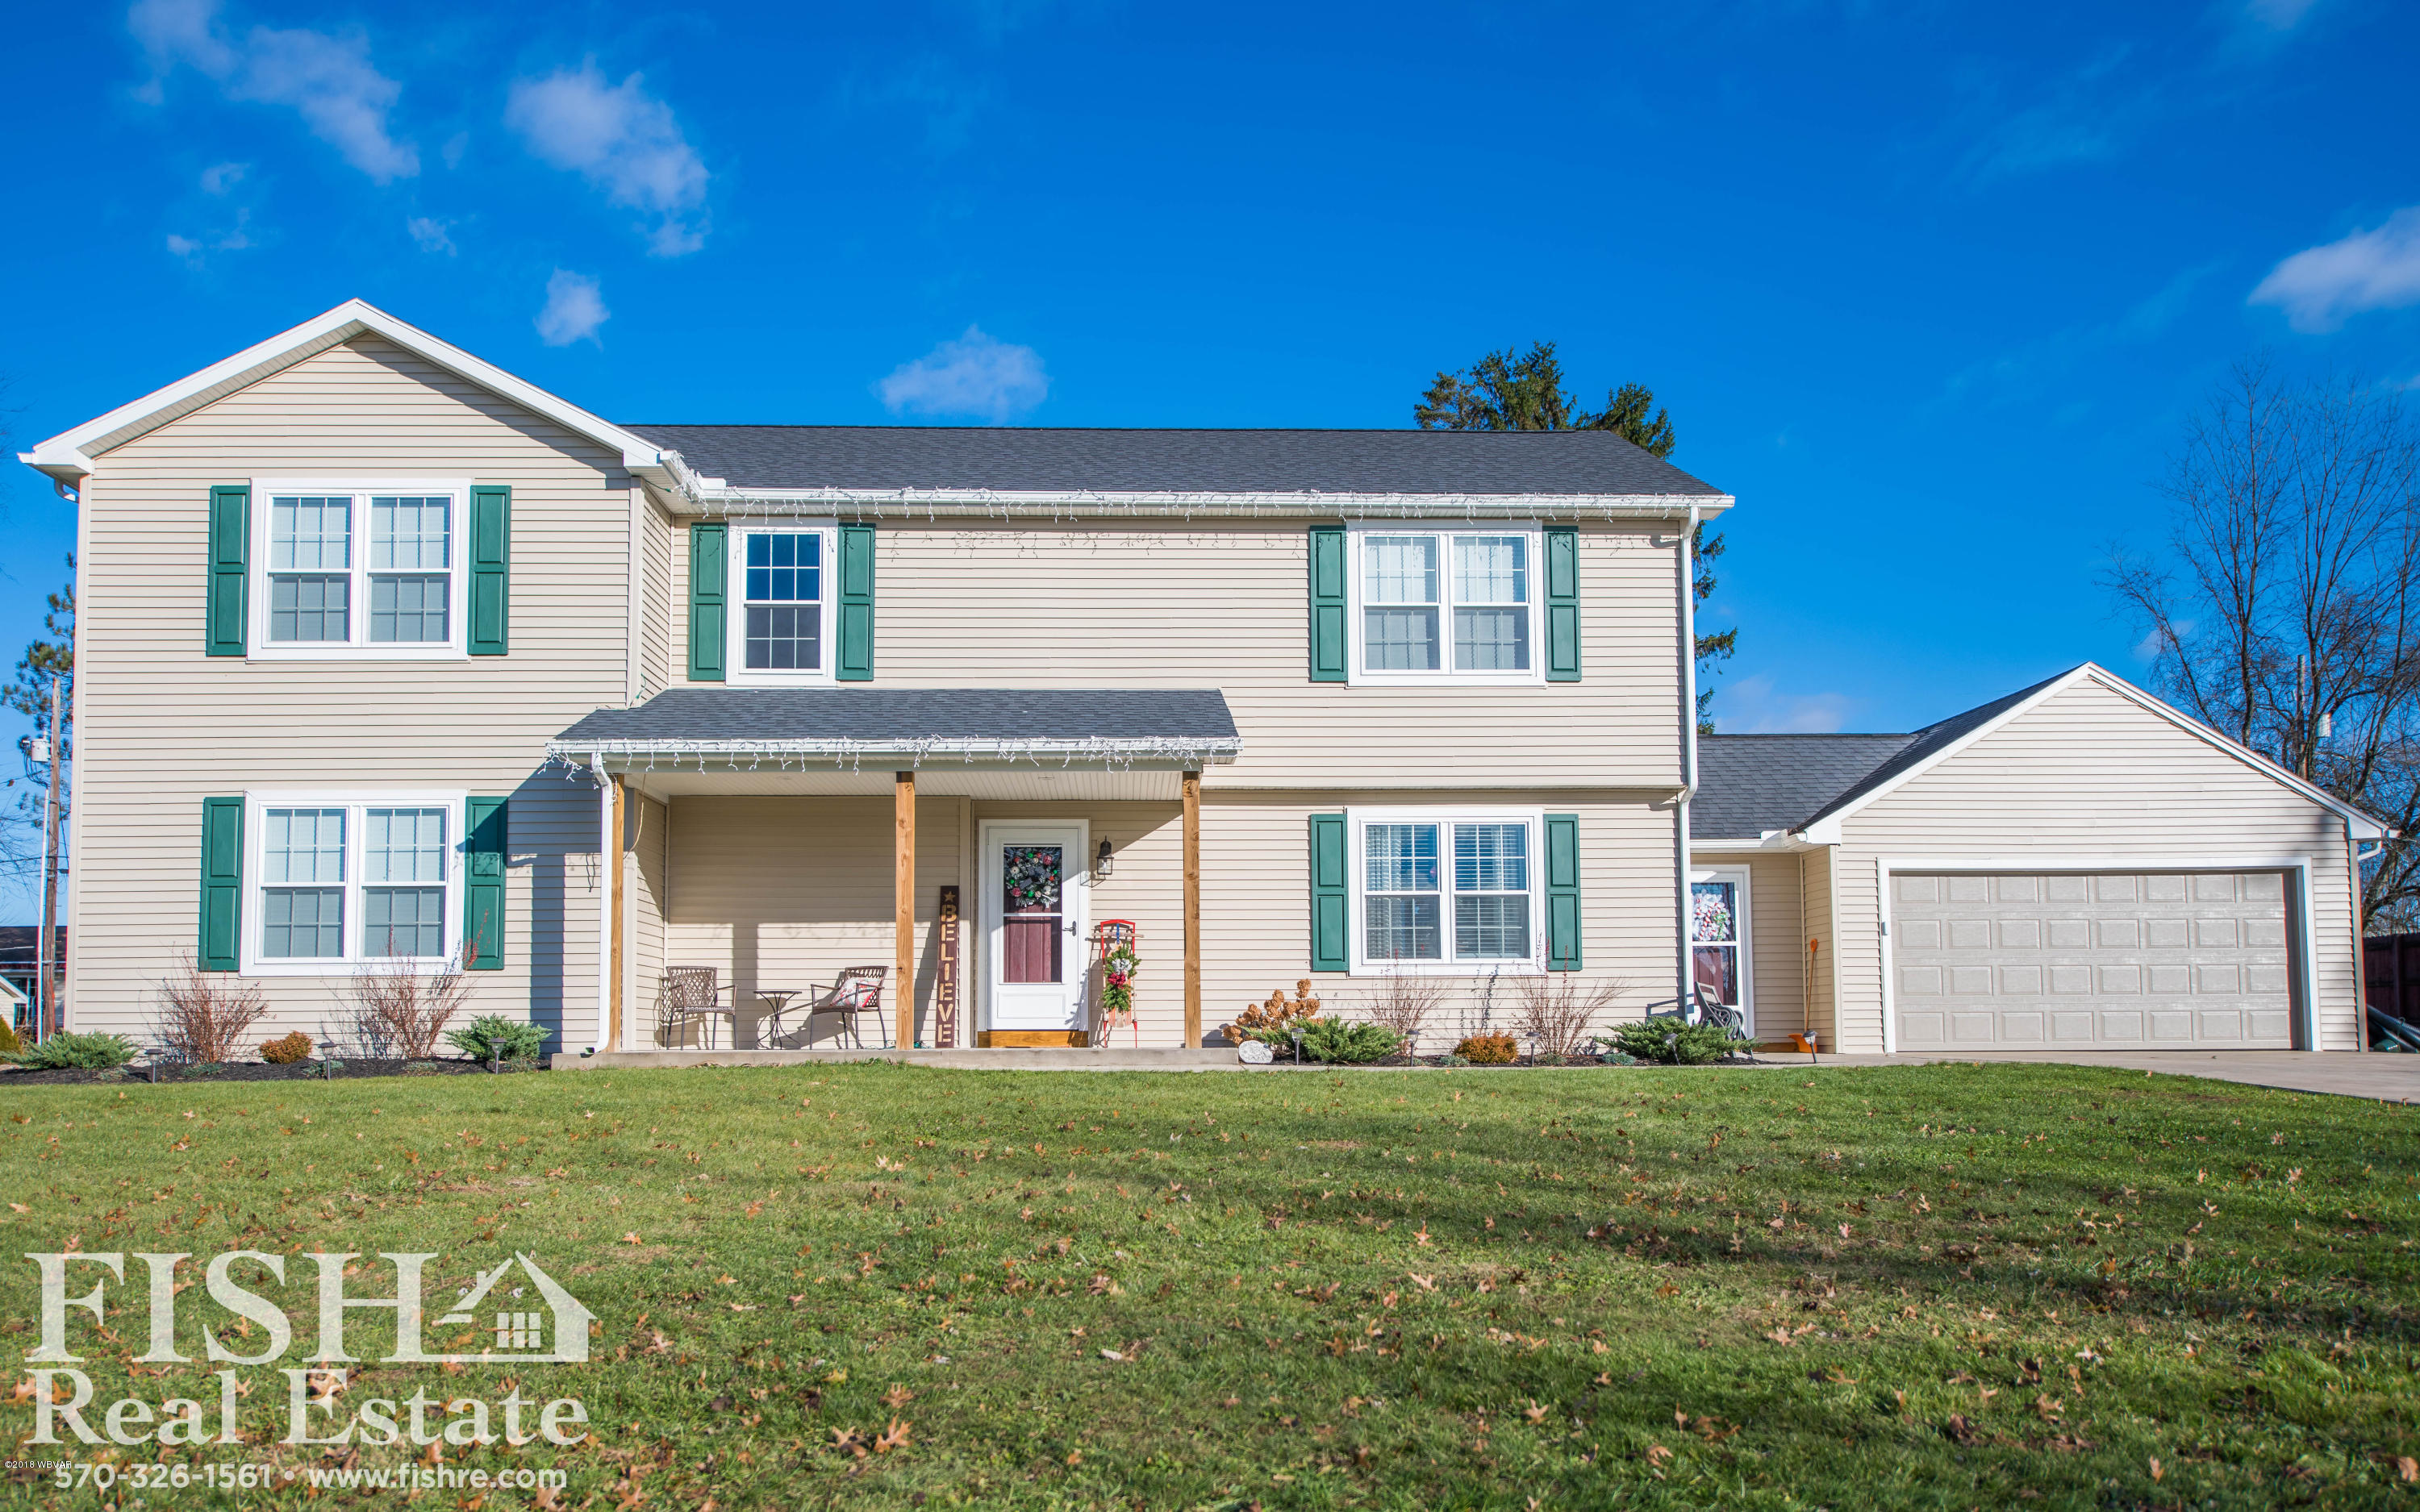 1940 INVERNESS ROAD,Montoursville,PA 17754,5 Bedrooms Bedrooms,3 BathroomsBathrooms,Residential,INVERNESS,WB-86024